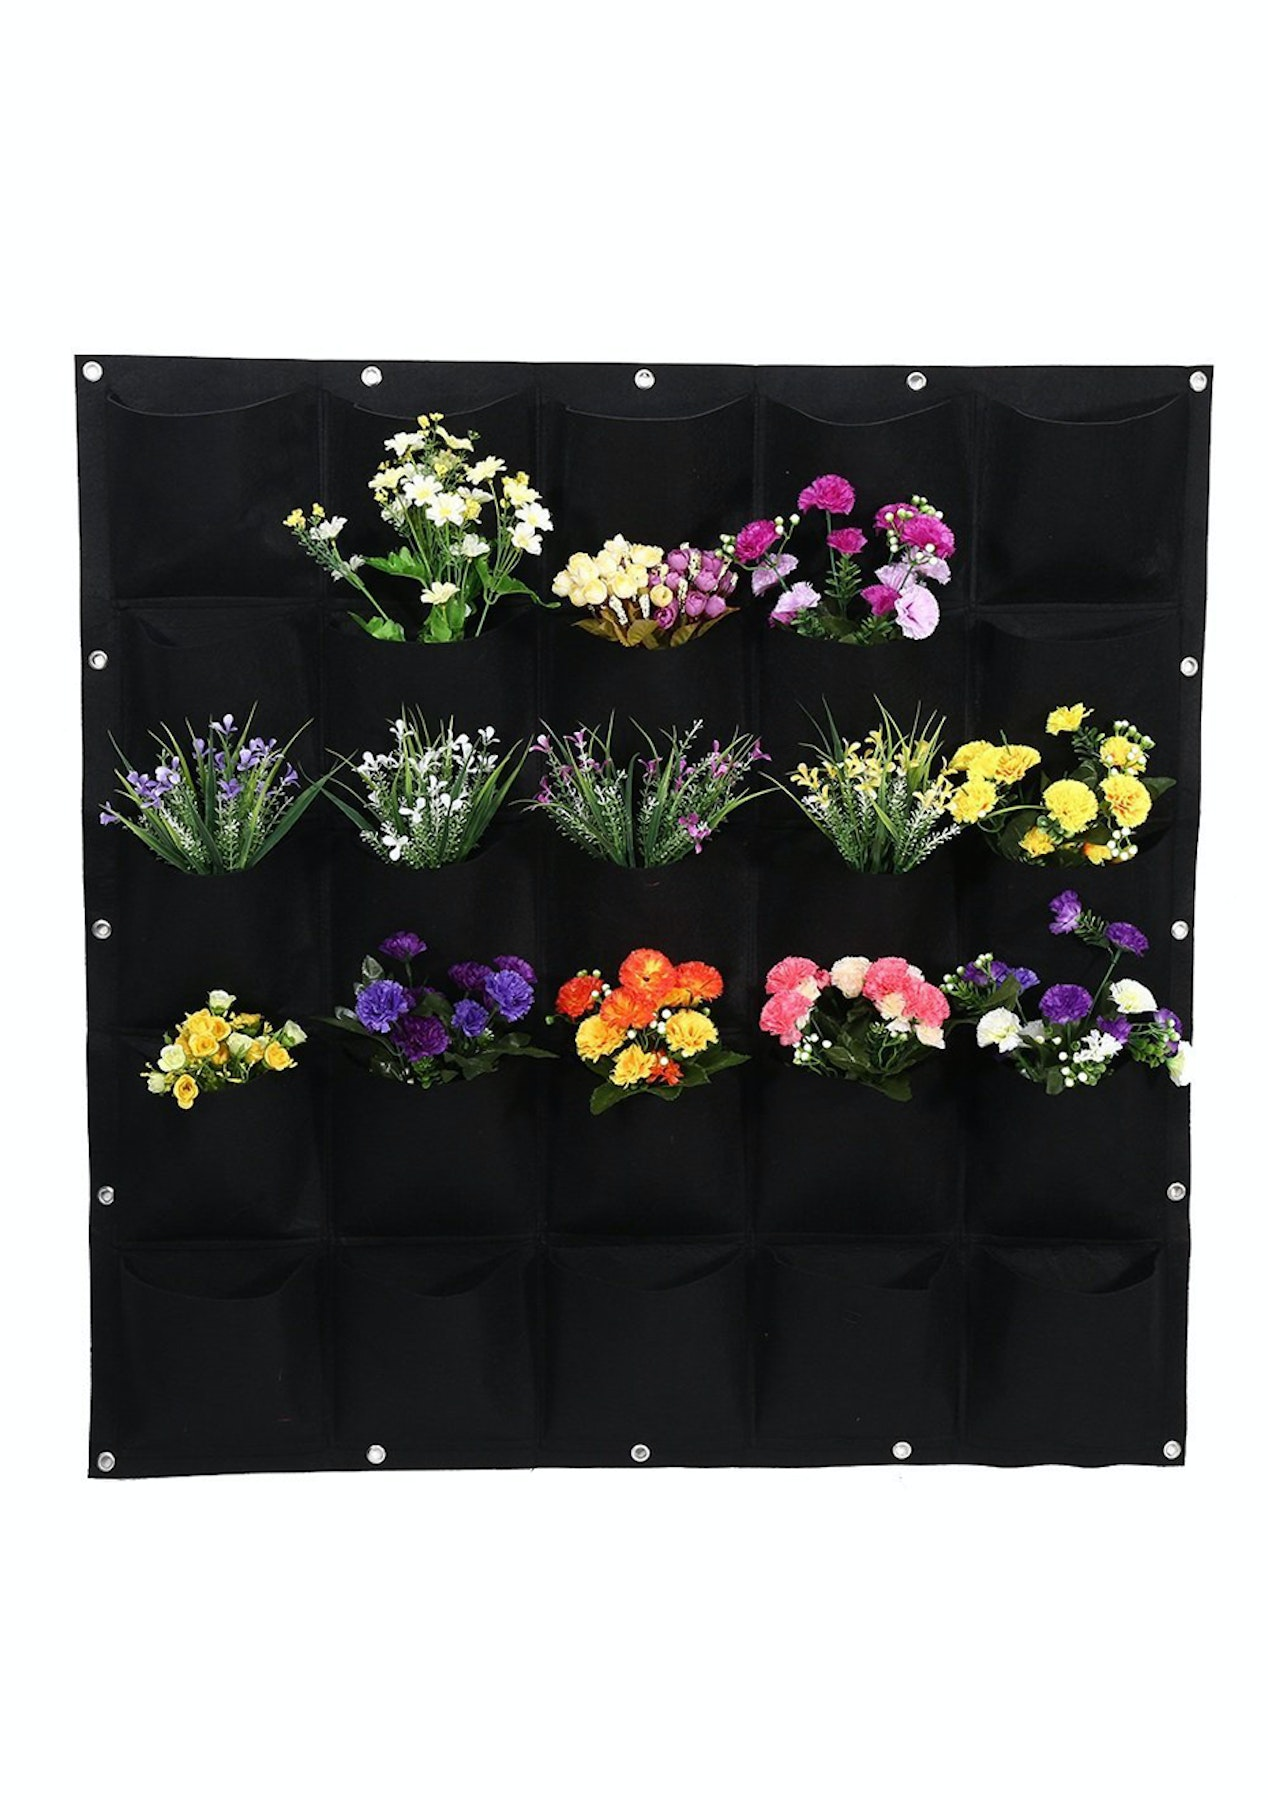 25 Pocket Wall Hanging Gardening Plant Bag The Outdoor Furniture Onceit